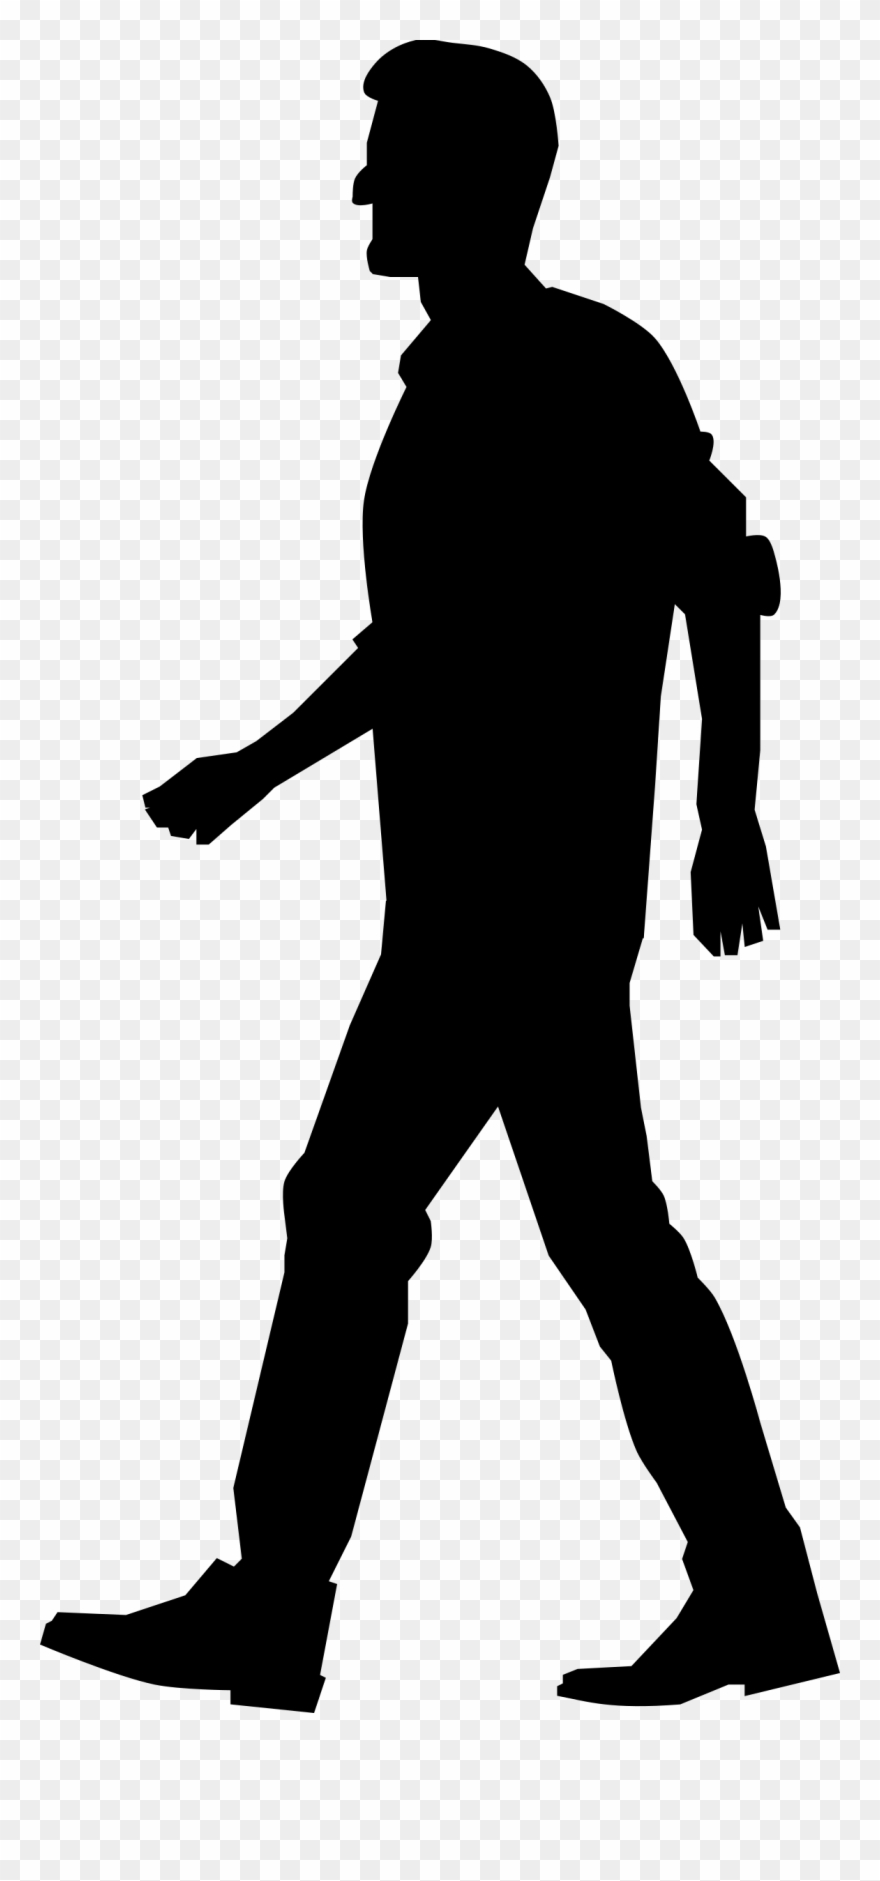 Clipart walking outline. Png people silhouette